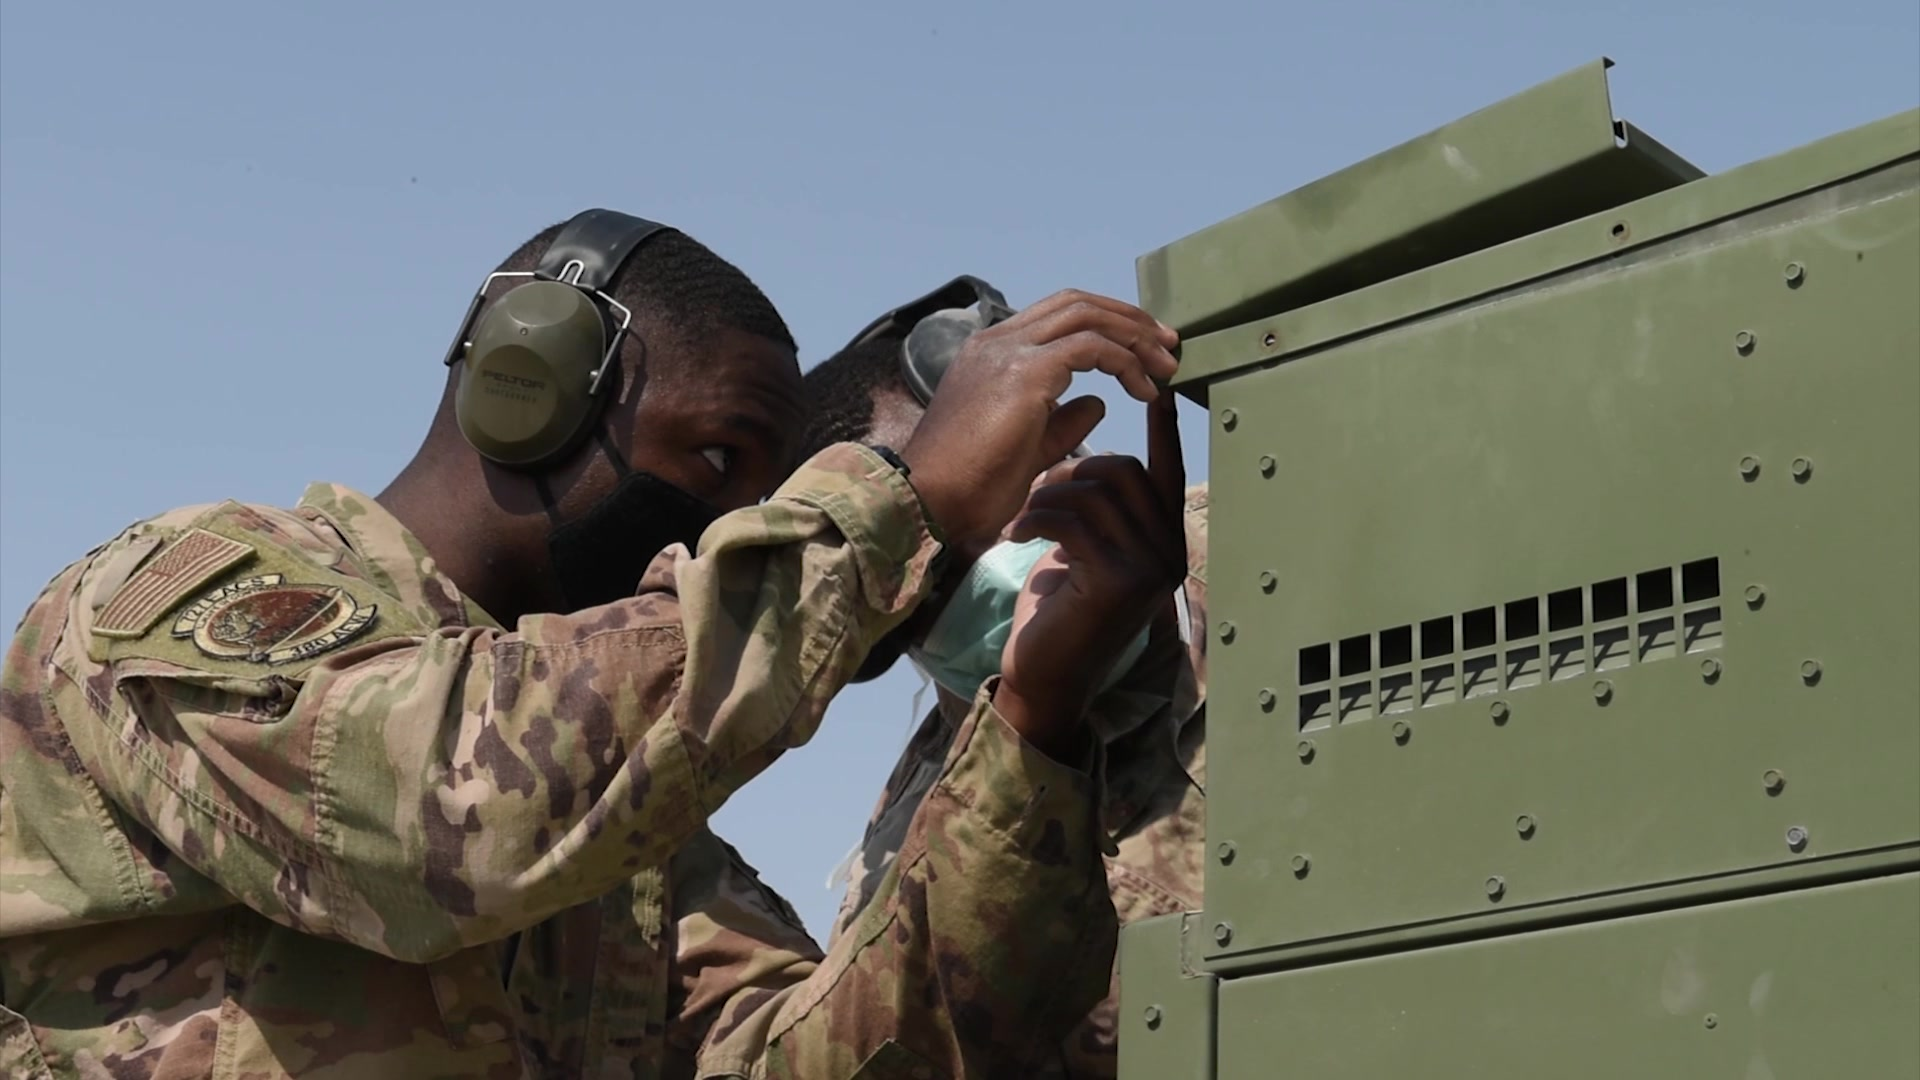 The 727th EACS is a group of Airmen who maintain our radars, monitor our skies and communicate with aircraft conducting missions throughout the U.S. Air Forces Central Command AOR.